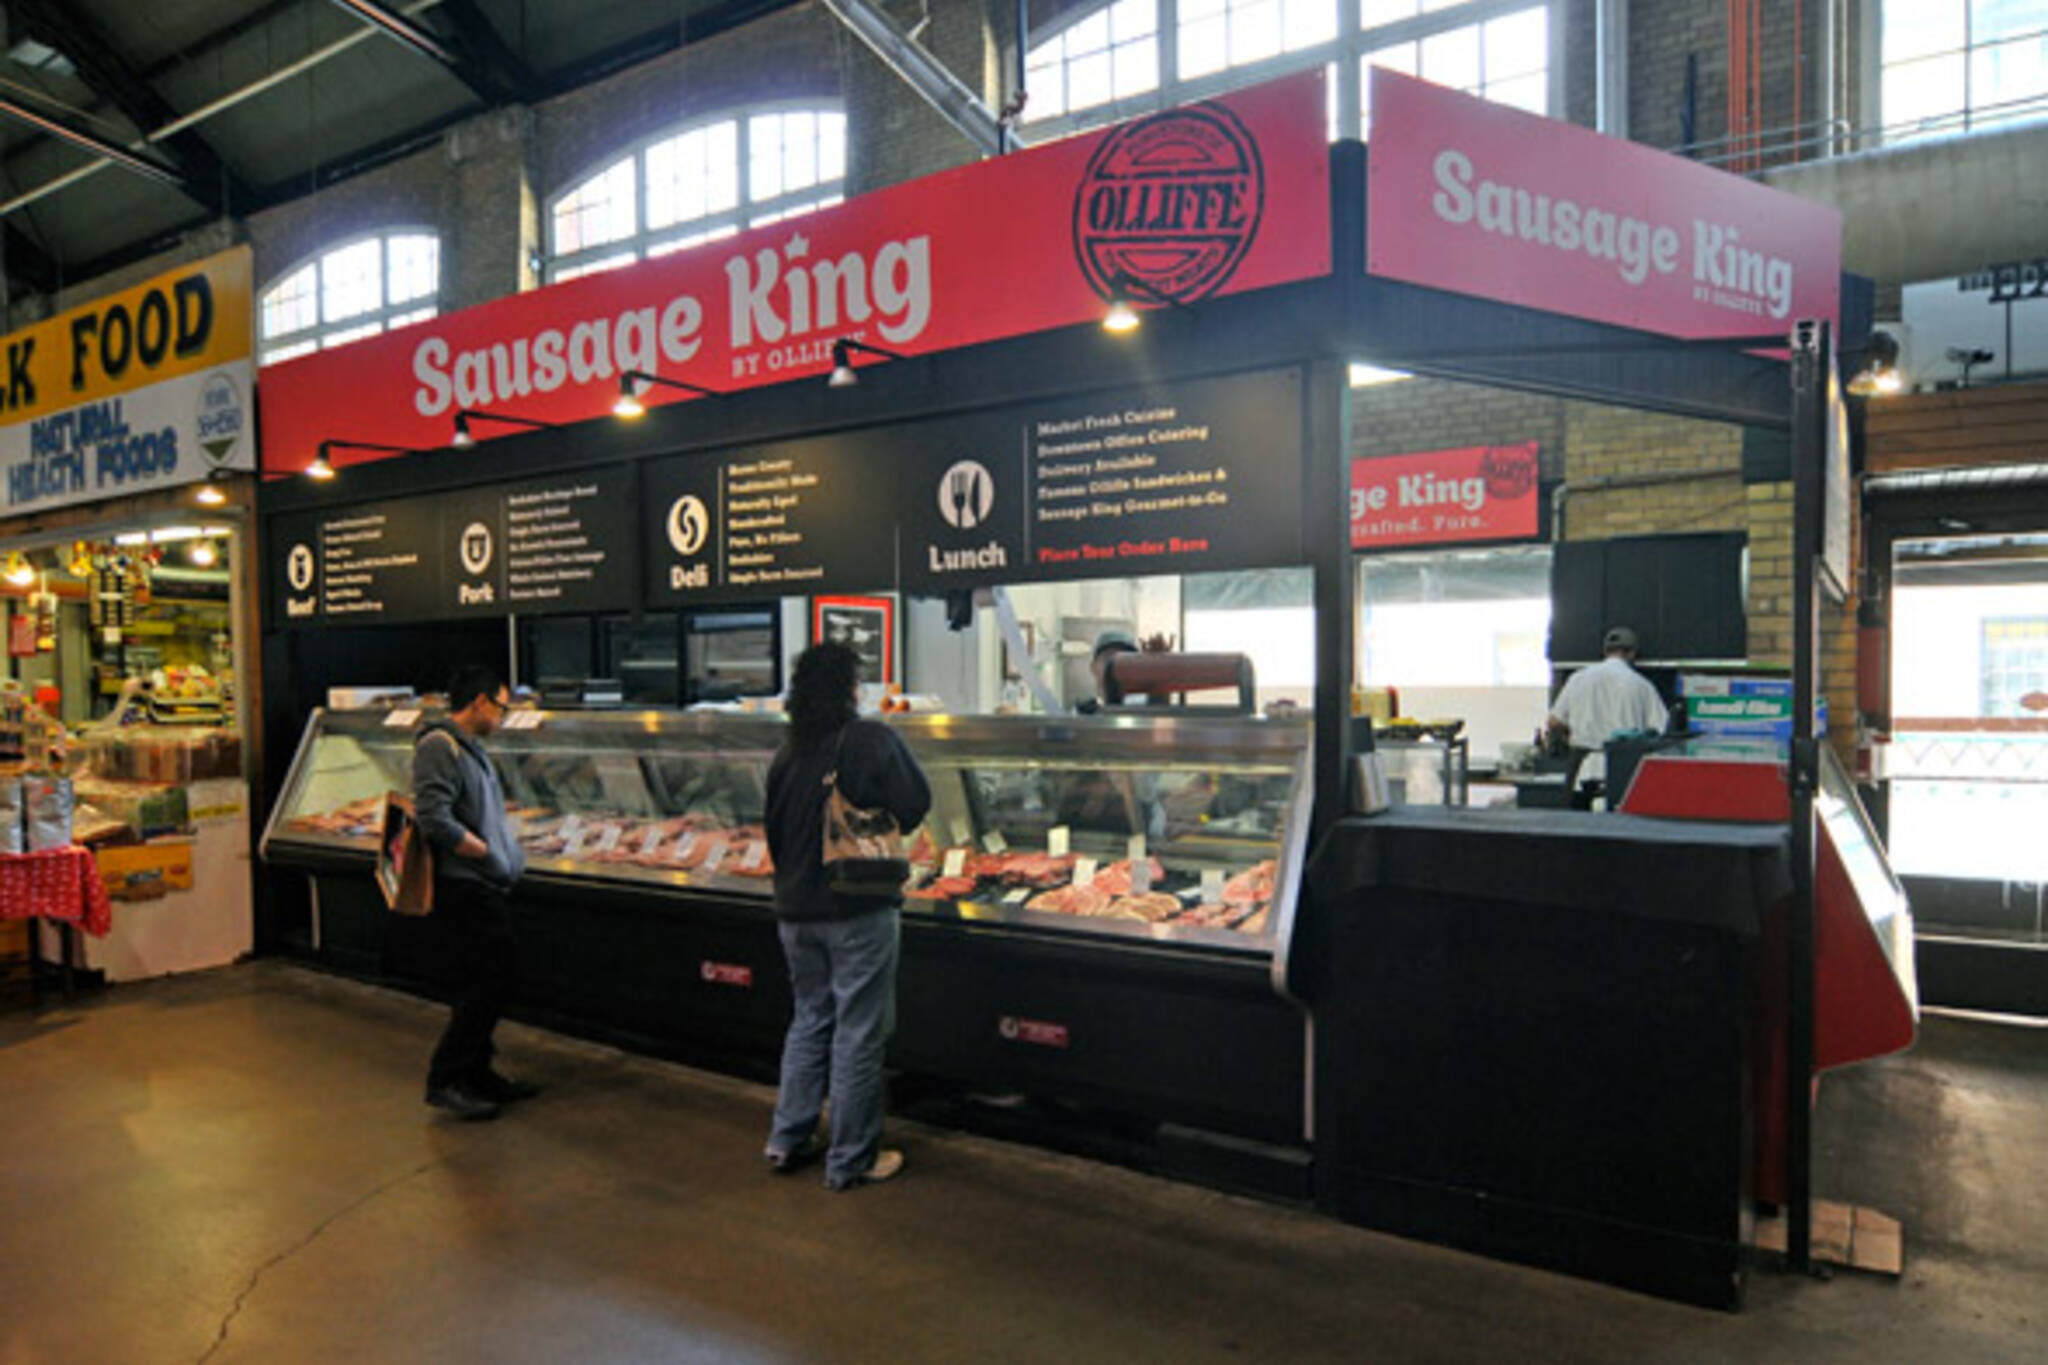 Sausage King by Olliffe